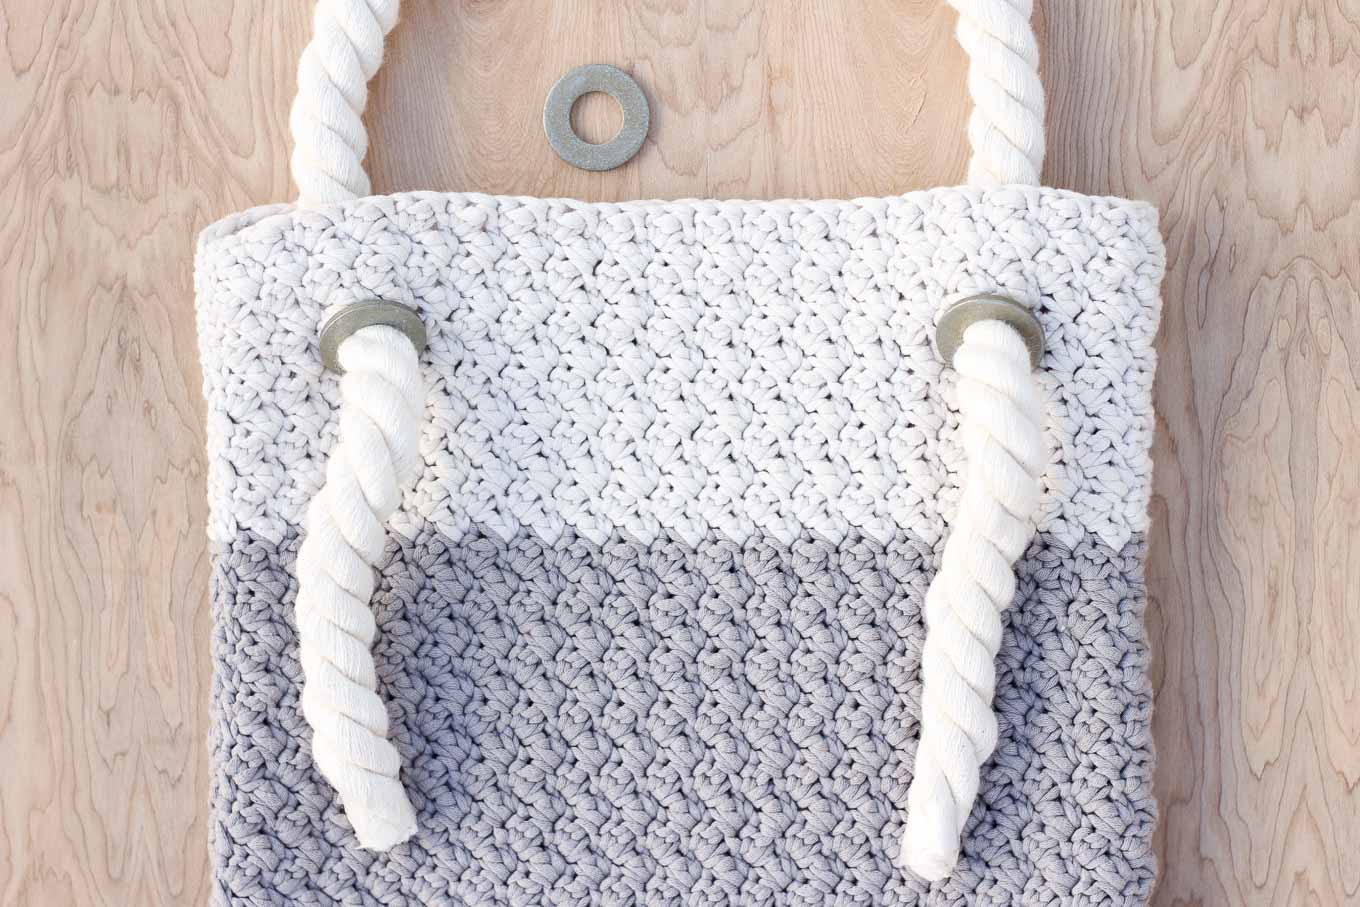 Free-Crochet-Bag-Pattern-Beginners-14 - Make & Do Crew